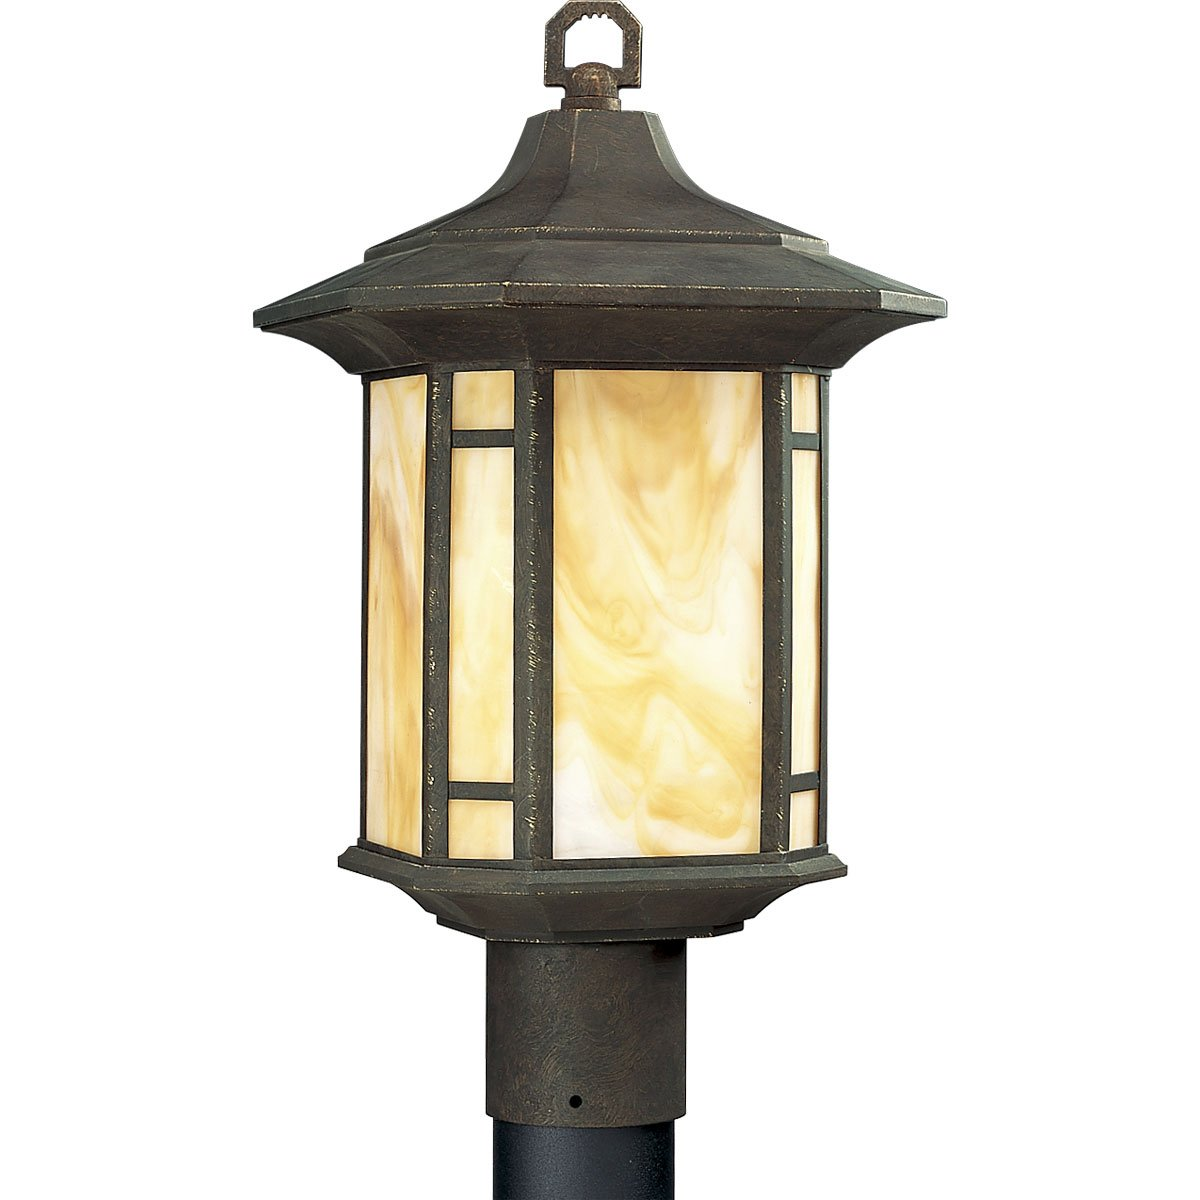 Amazon progress lighting p5428 46 1 light post lantern with amazon progress lighting p5428 46 1 light post lantern with honey art glass and mica accent panels weathered bronze landscape torch lights garden aloadofball Gallery